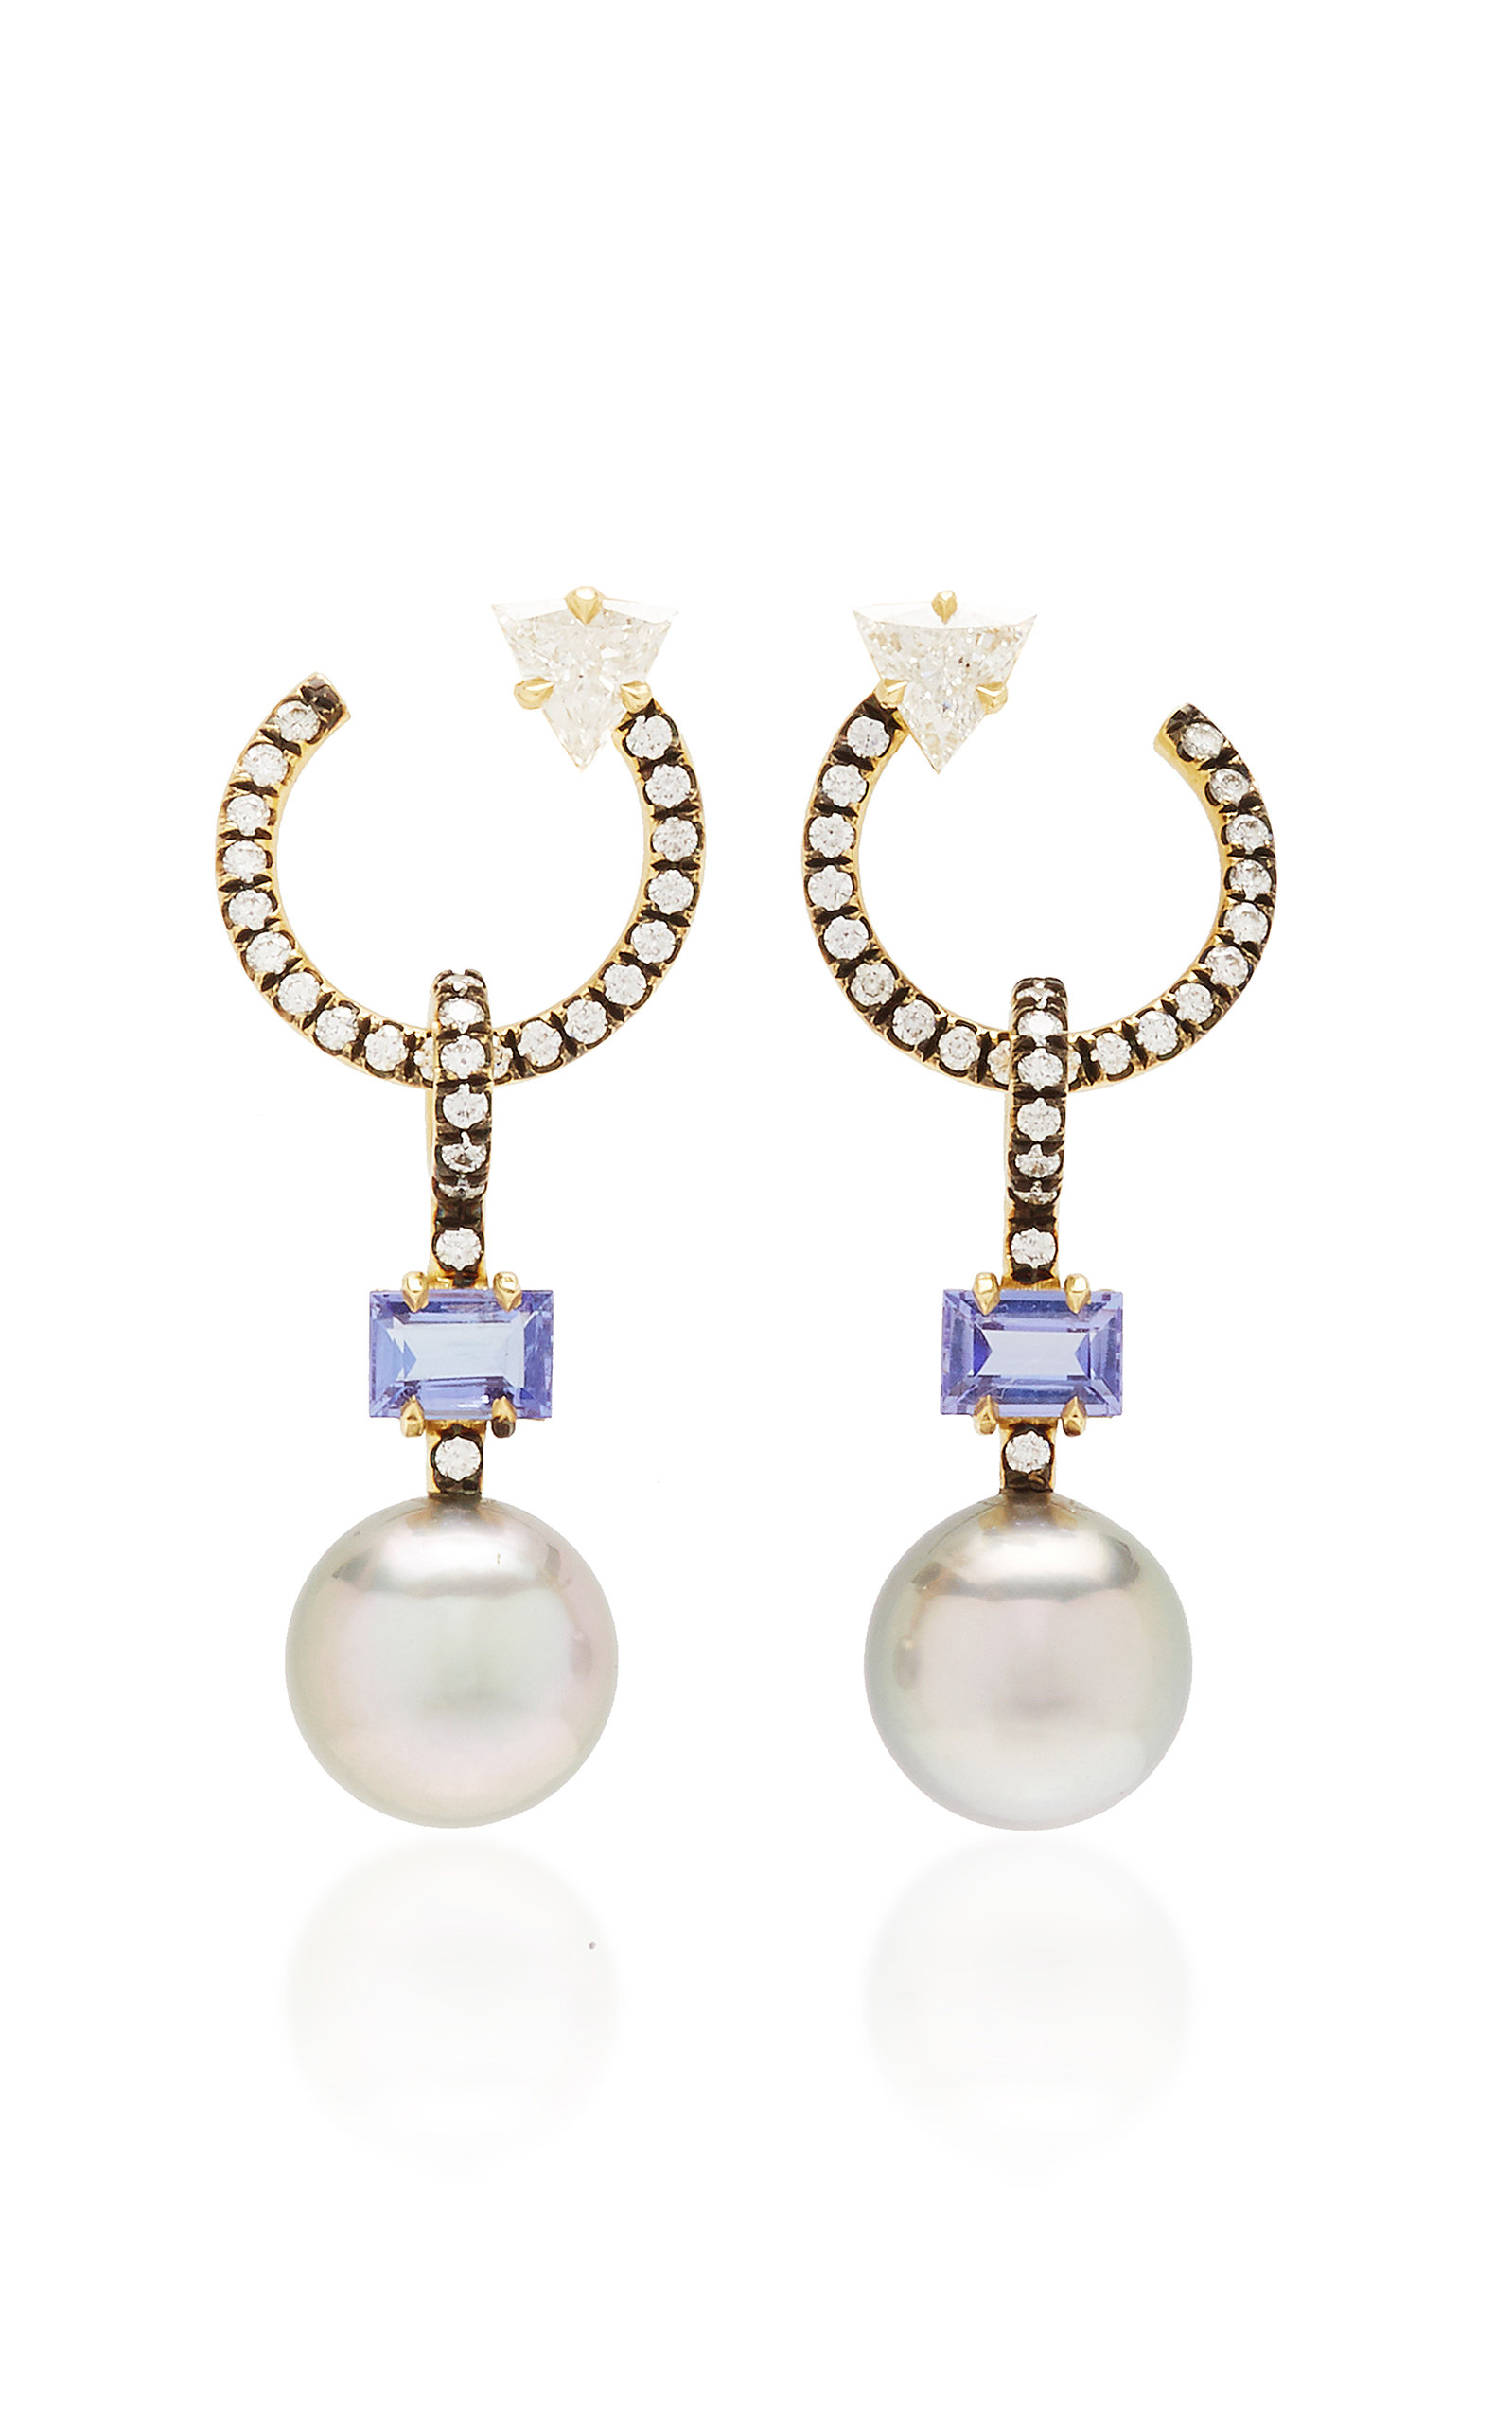 4bd4561dd2f3e 18k gold pave hoops with tahitian pearl drops